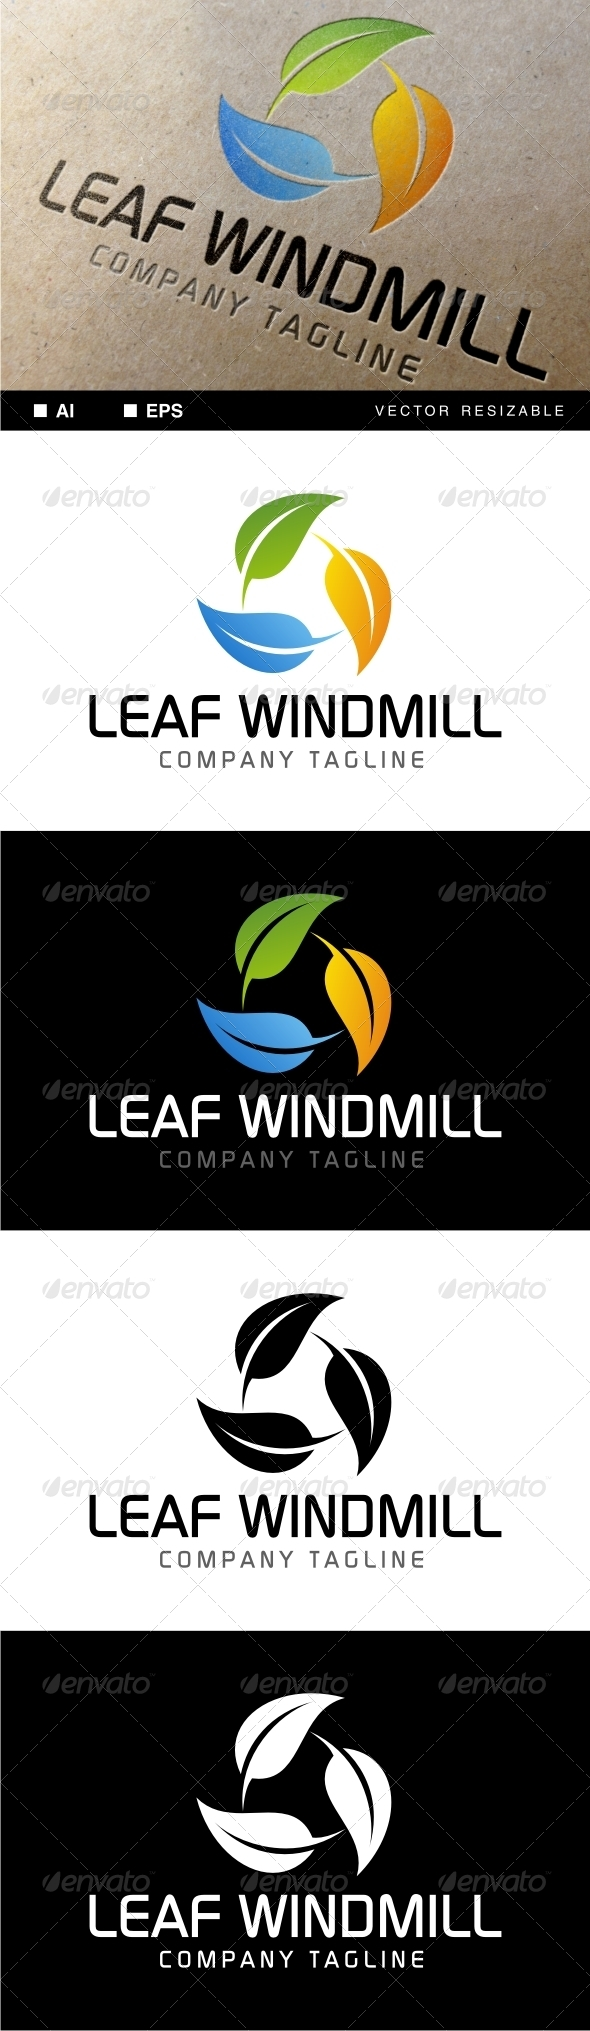 Leaf Windmill Logo - Nature Logo Templates